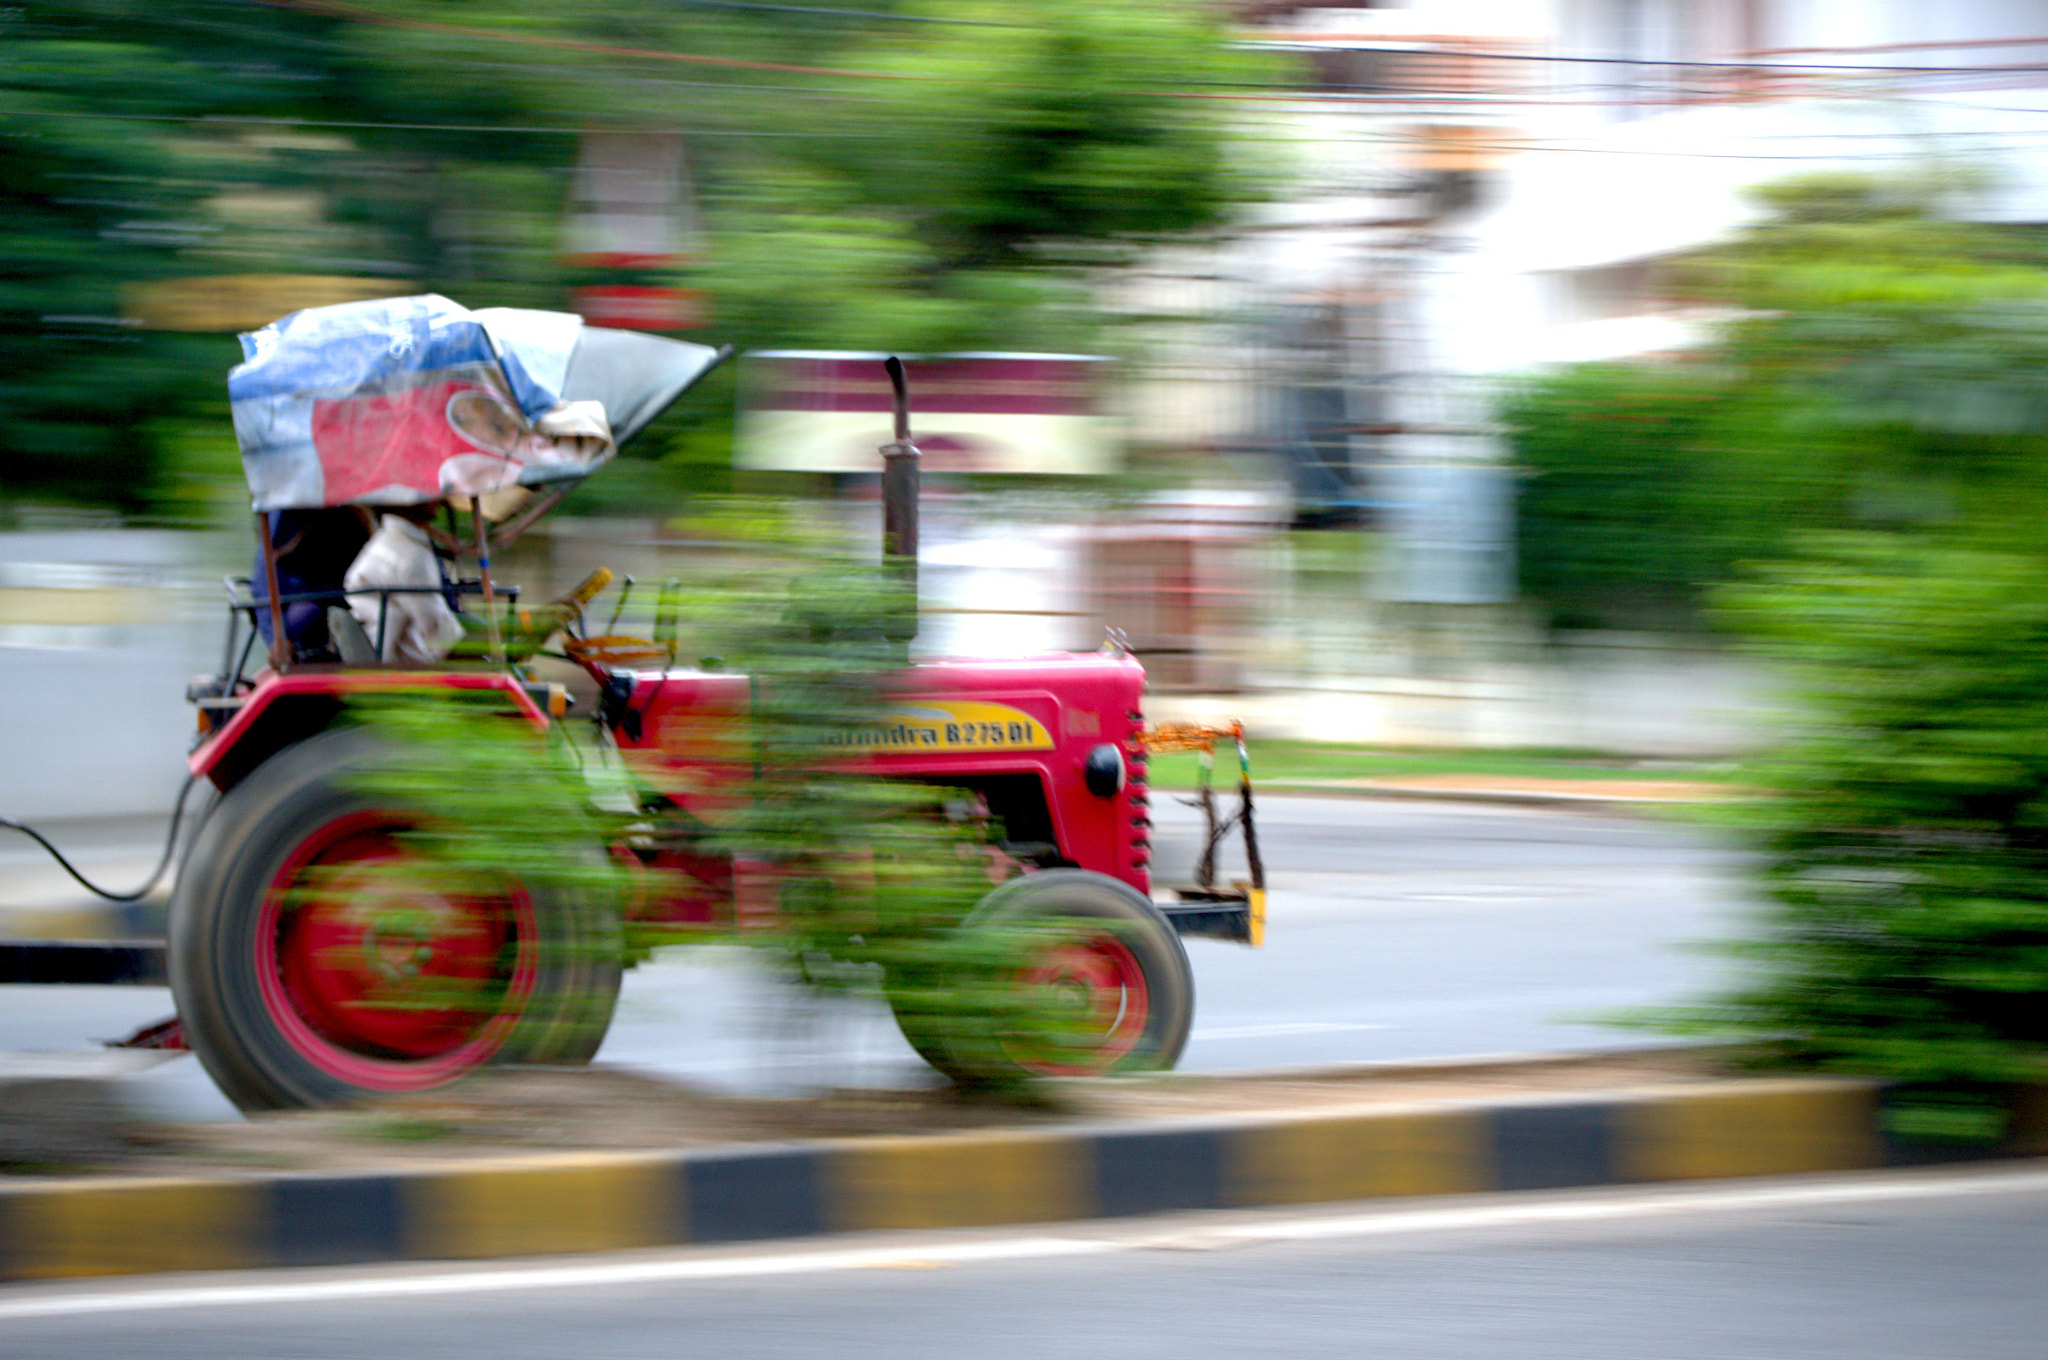 Photograph velocity by Ankit Richharia on 500px